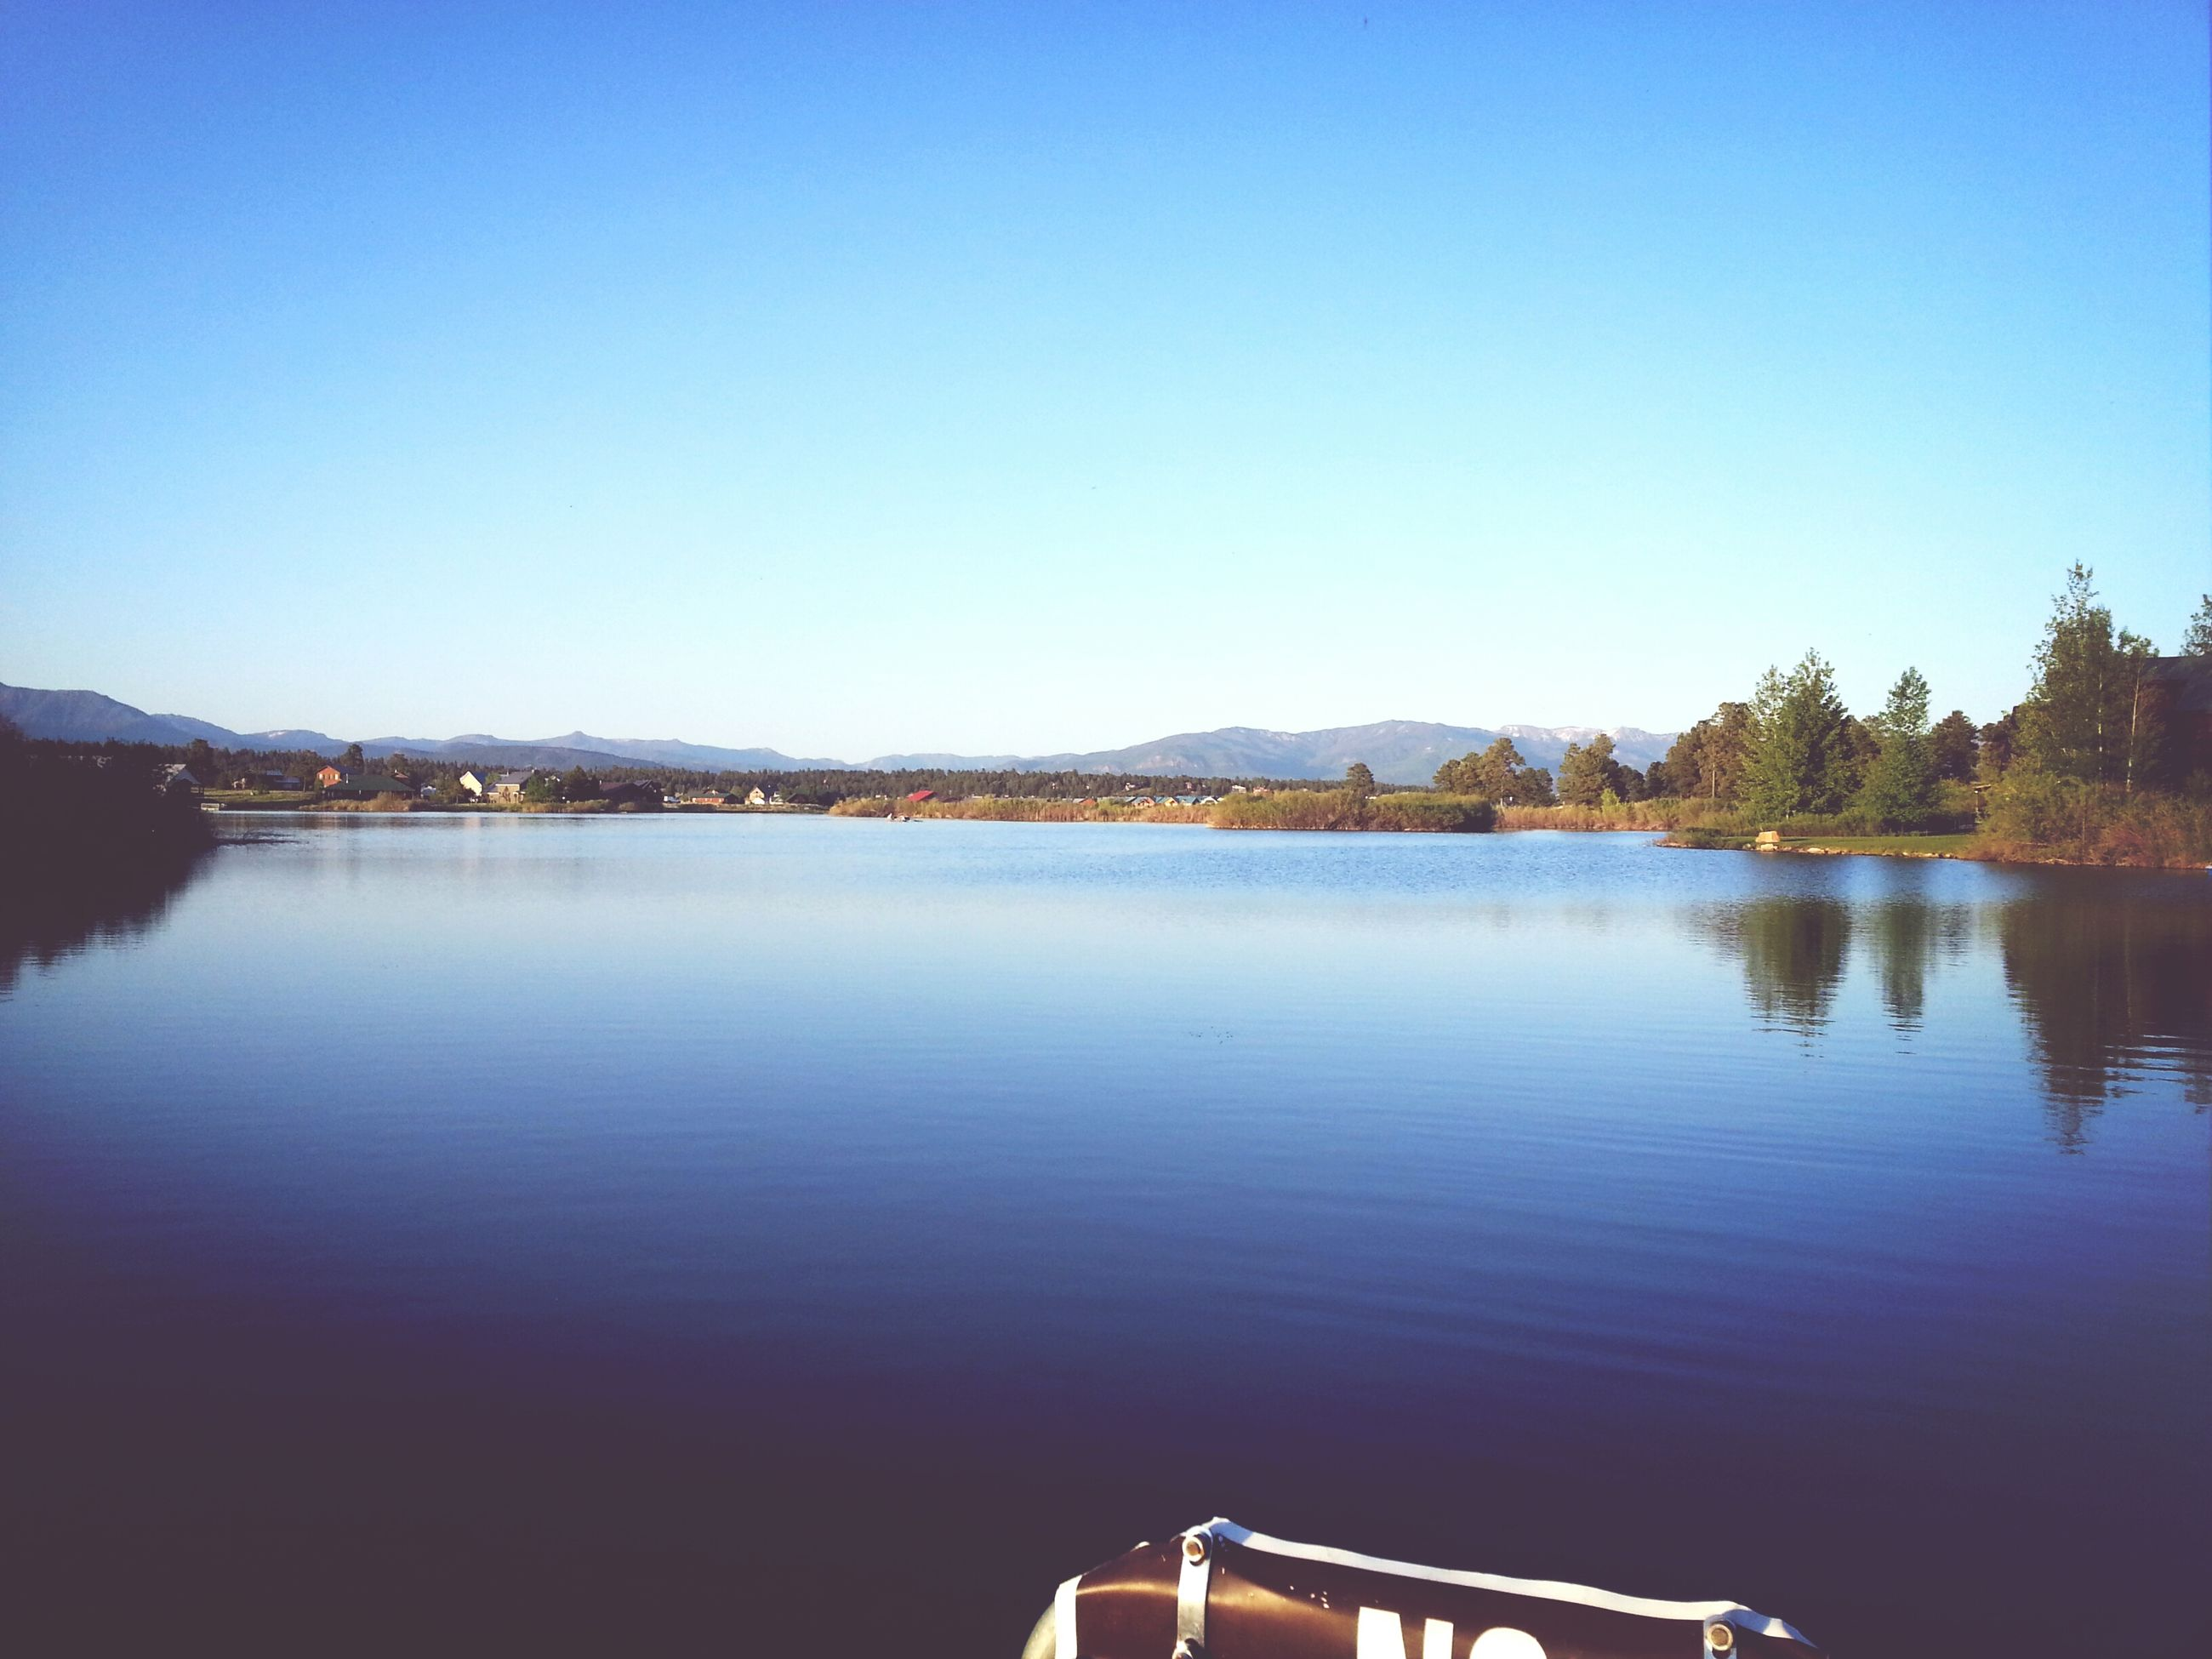 clear sky, copy space, water, blue, built structure, lake, reflection, architecture, waterfront, river, tranquil scene, tranquility, building exterior, scenics, nature, beauty in nature, outdoors, no people, day, mountain